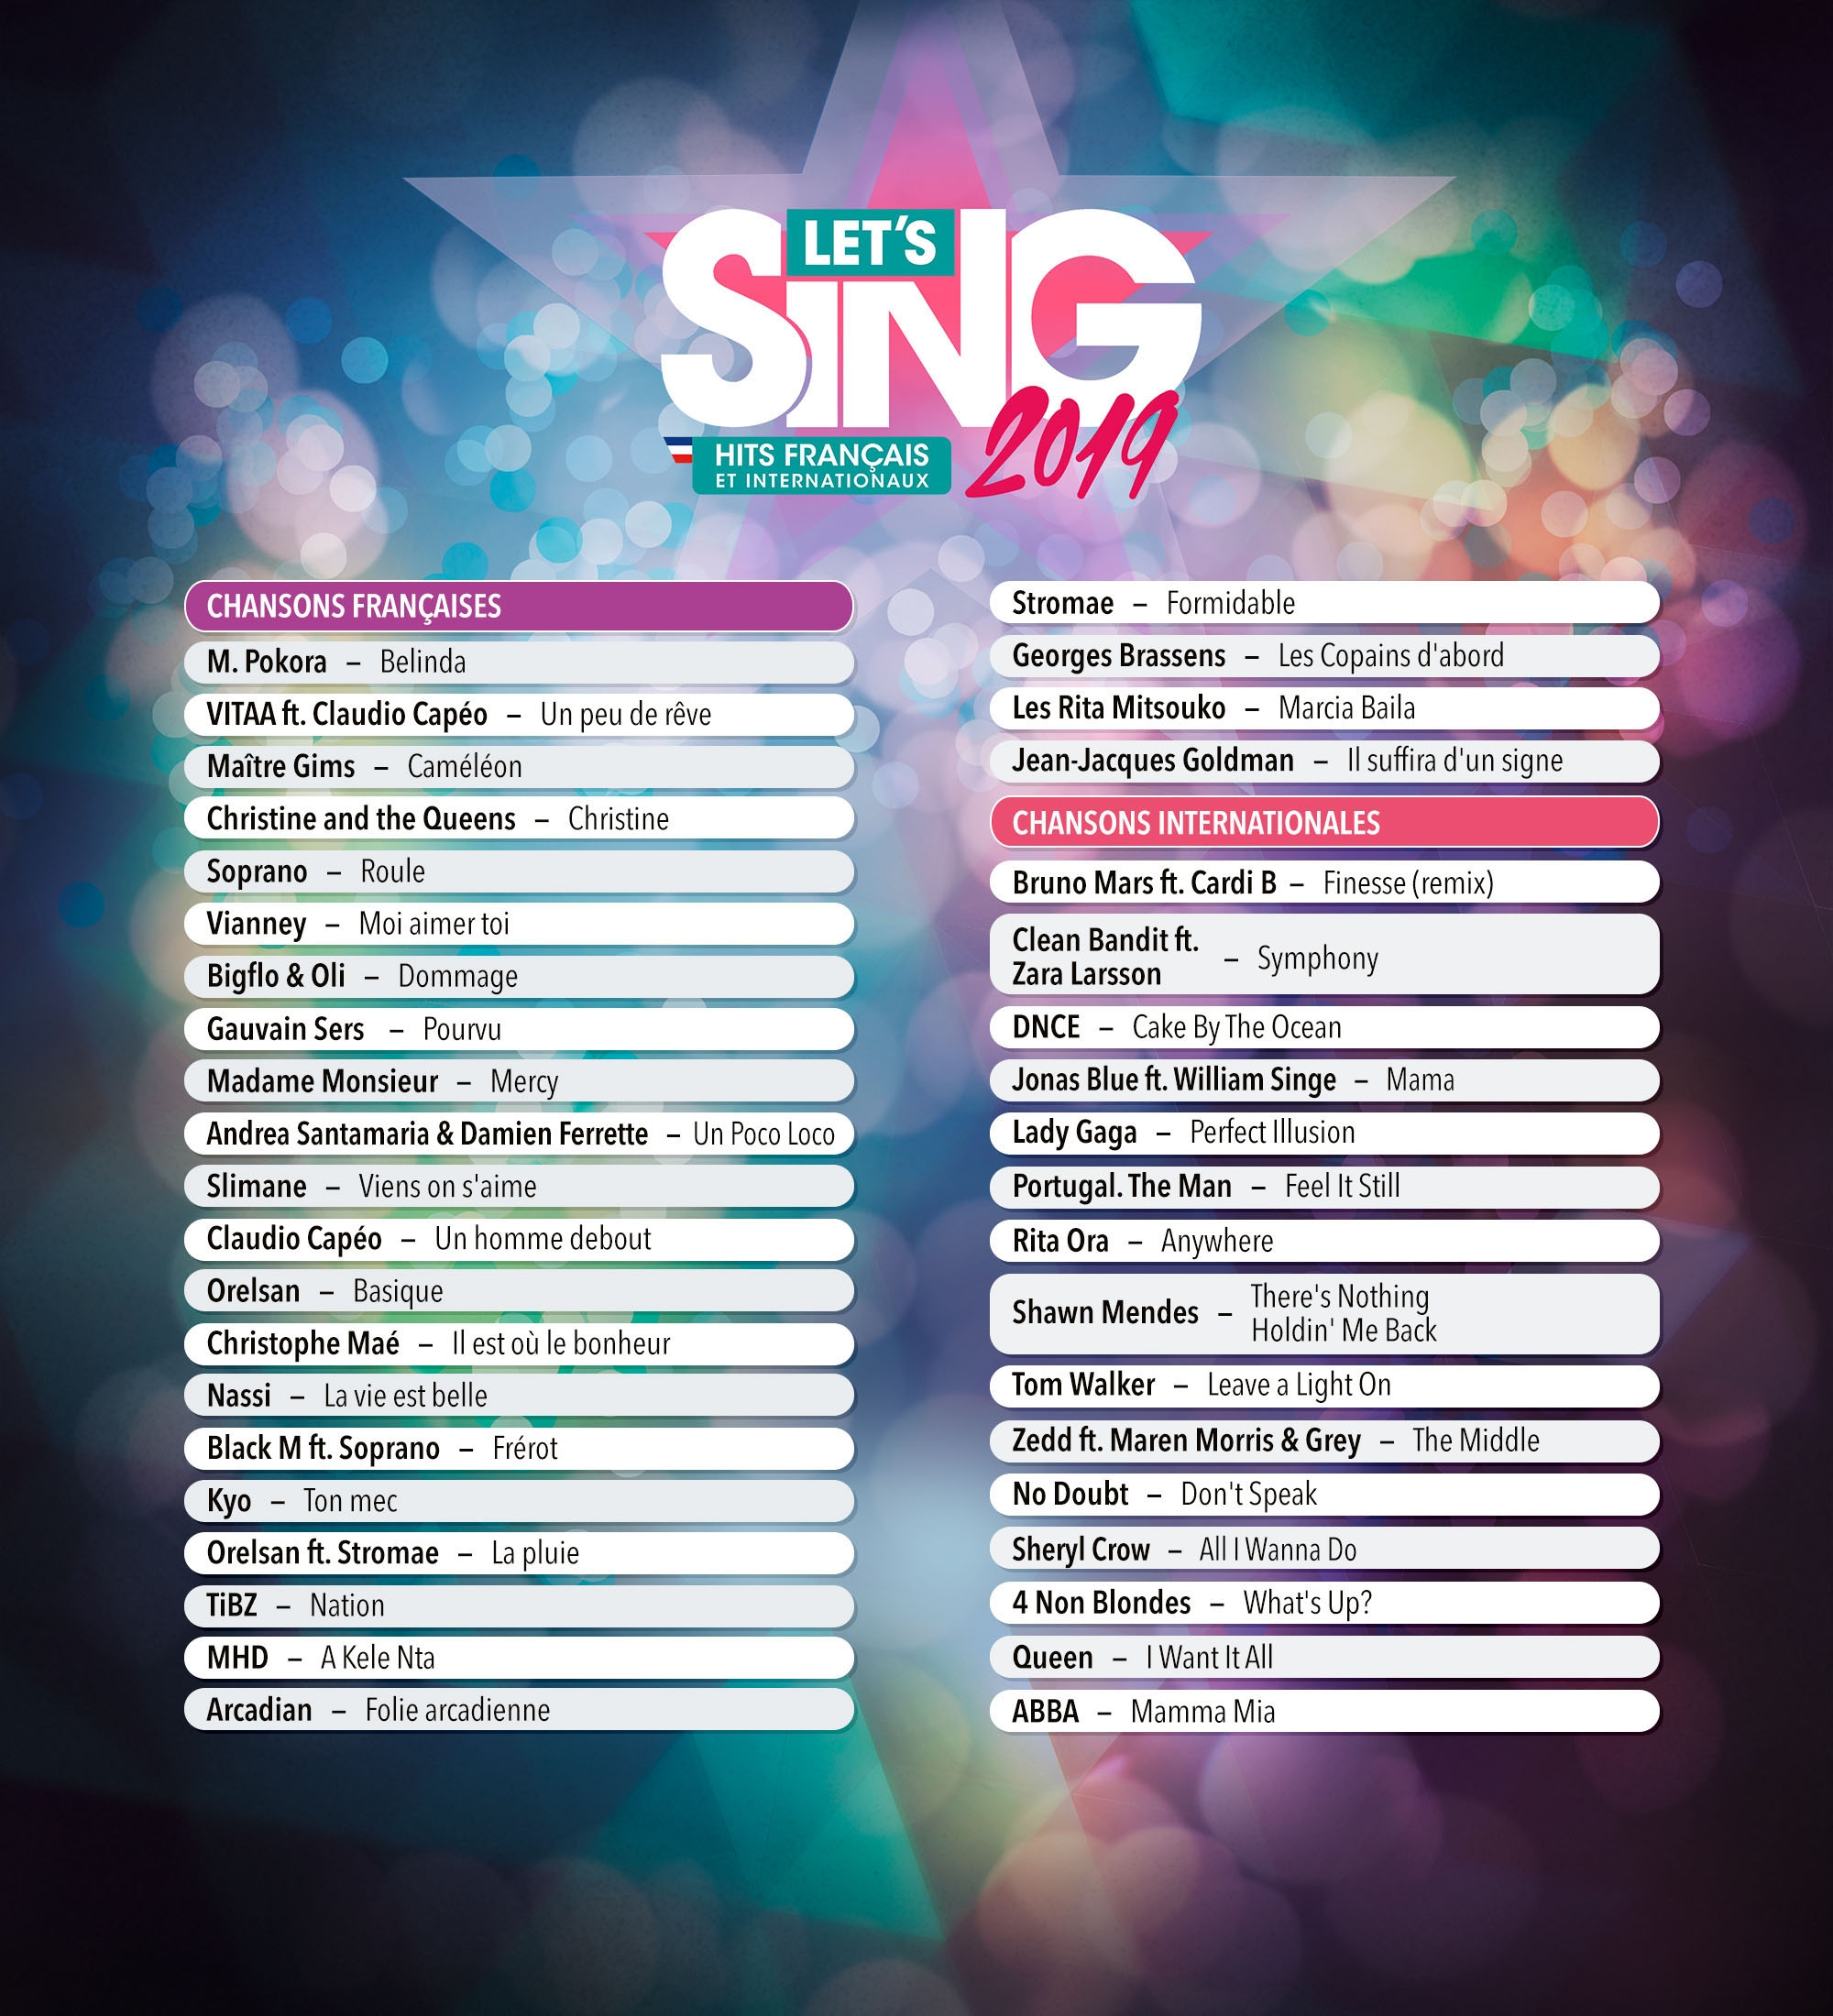 Let's sing 2019 song list